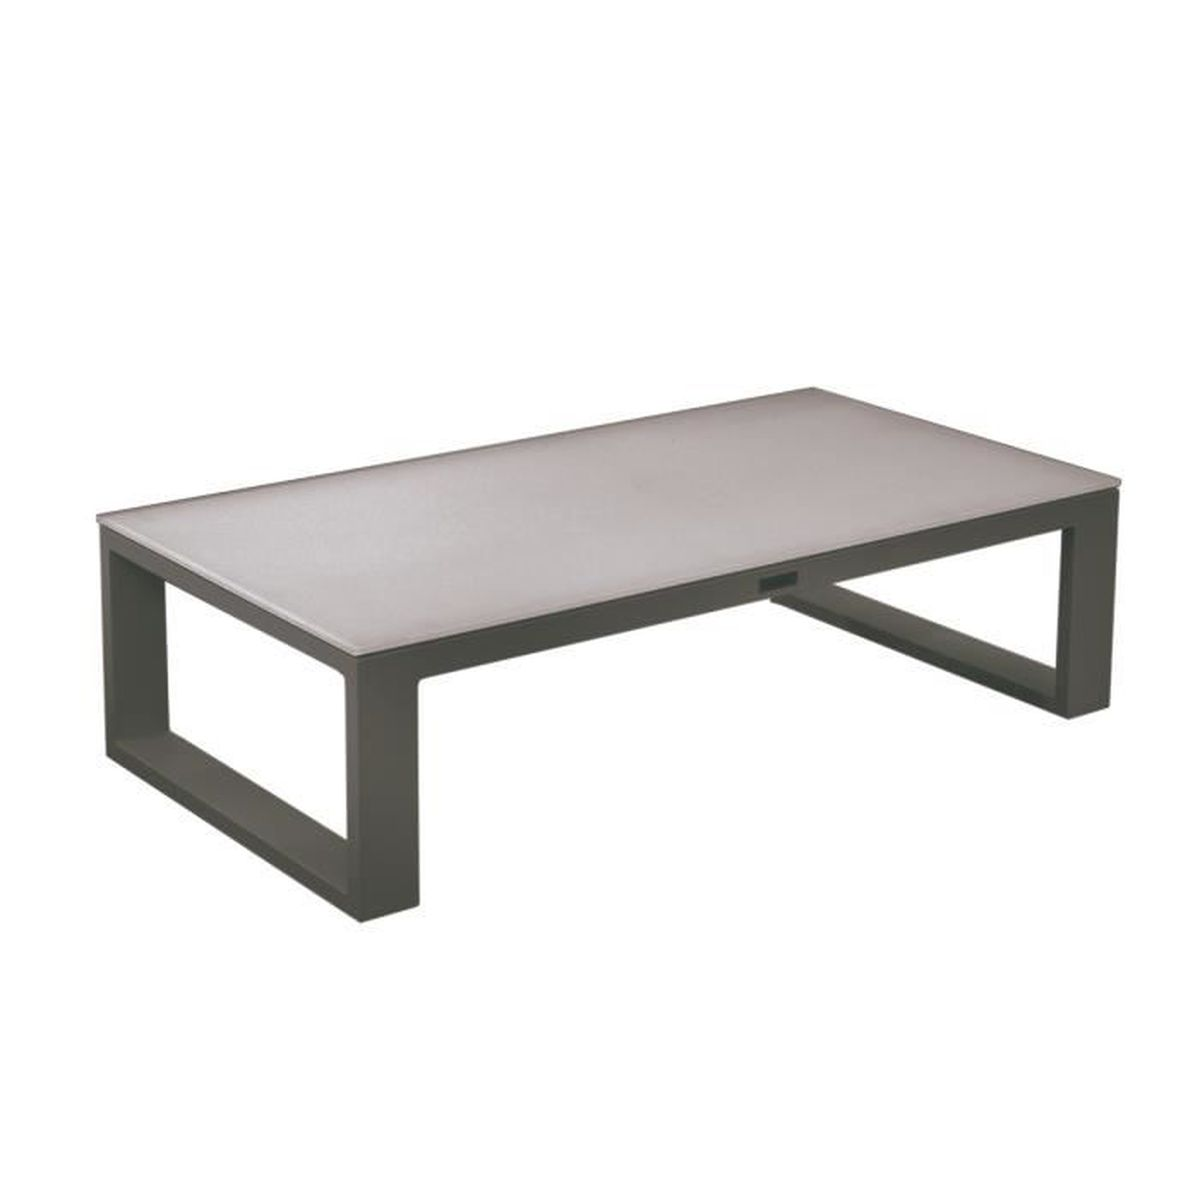 table basse en aluminium design jardin terrasse belluno tresi moka achat vente table basse. Black Bedroom Furniture Sets. Home Design Ideas